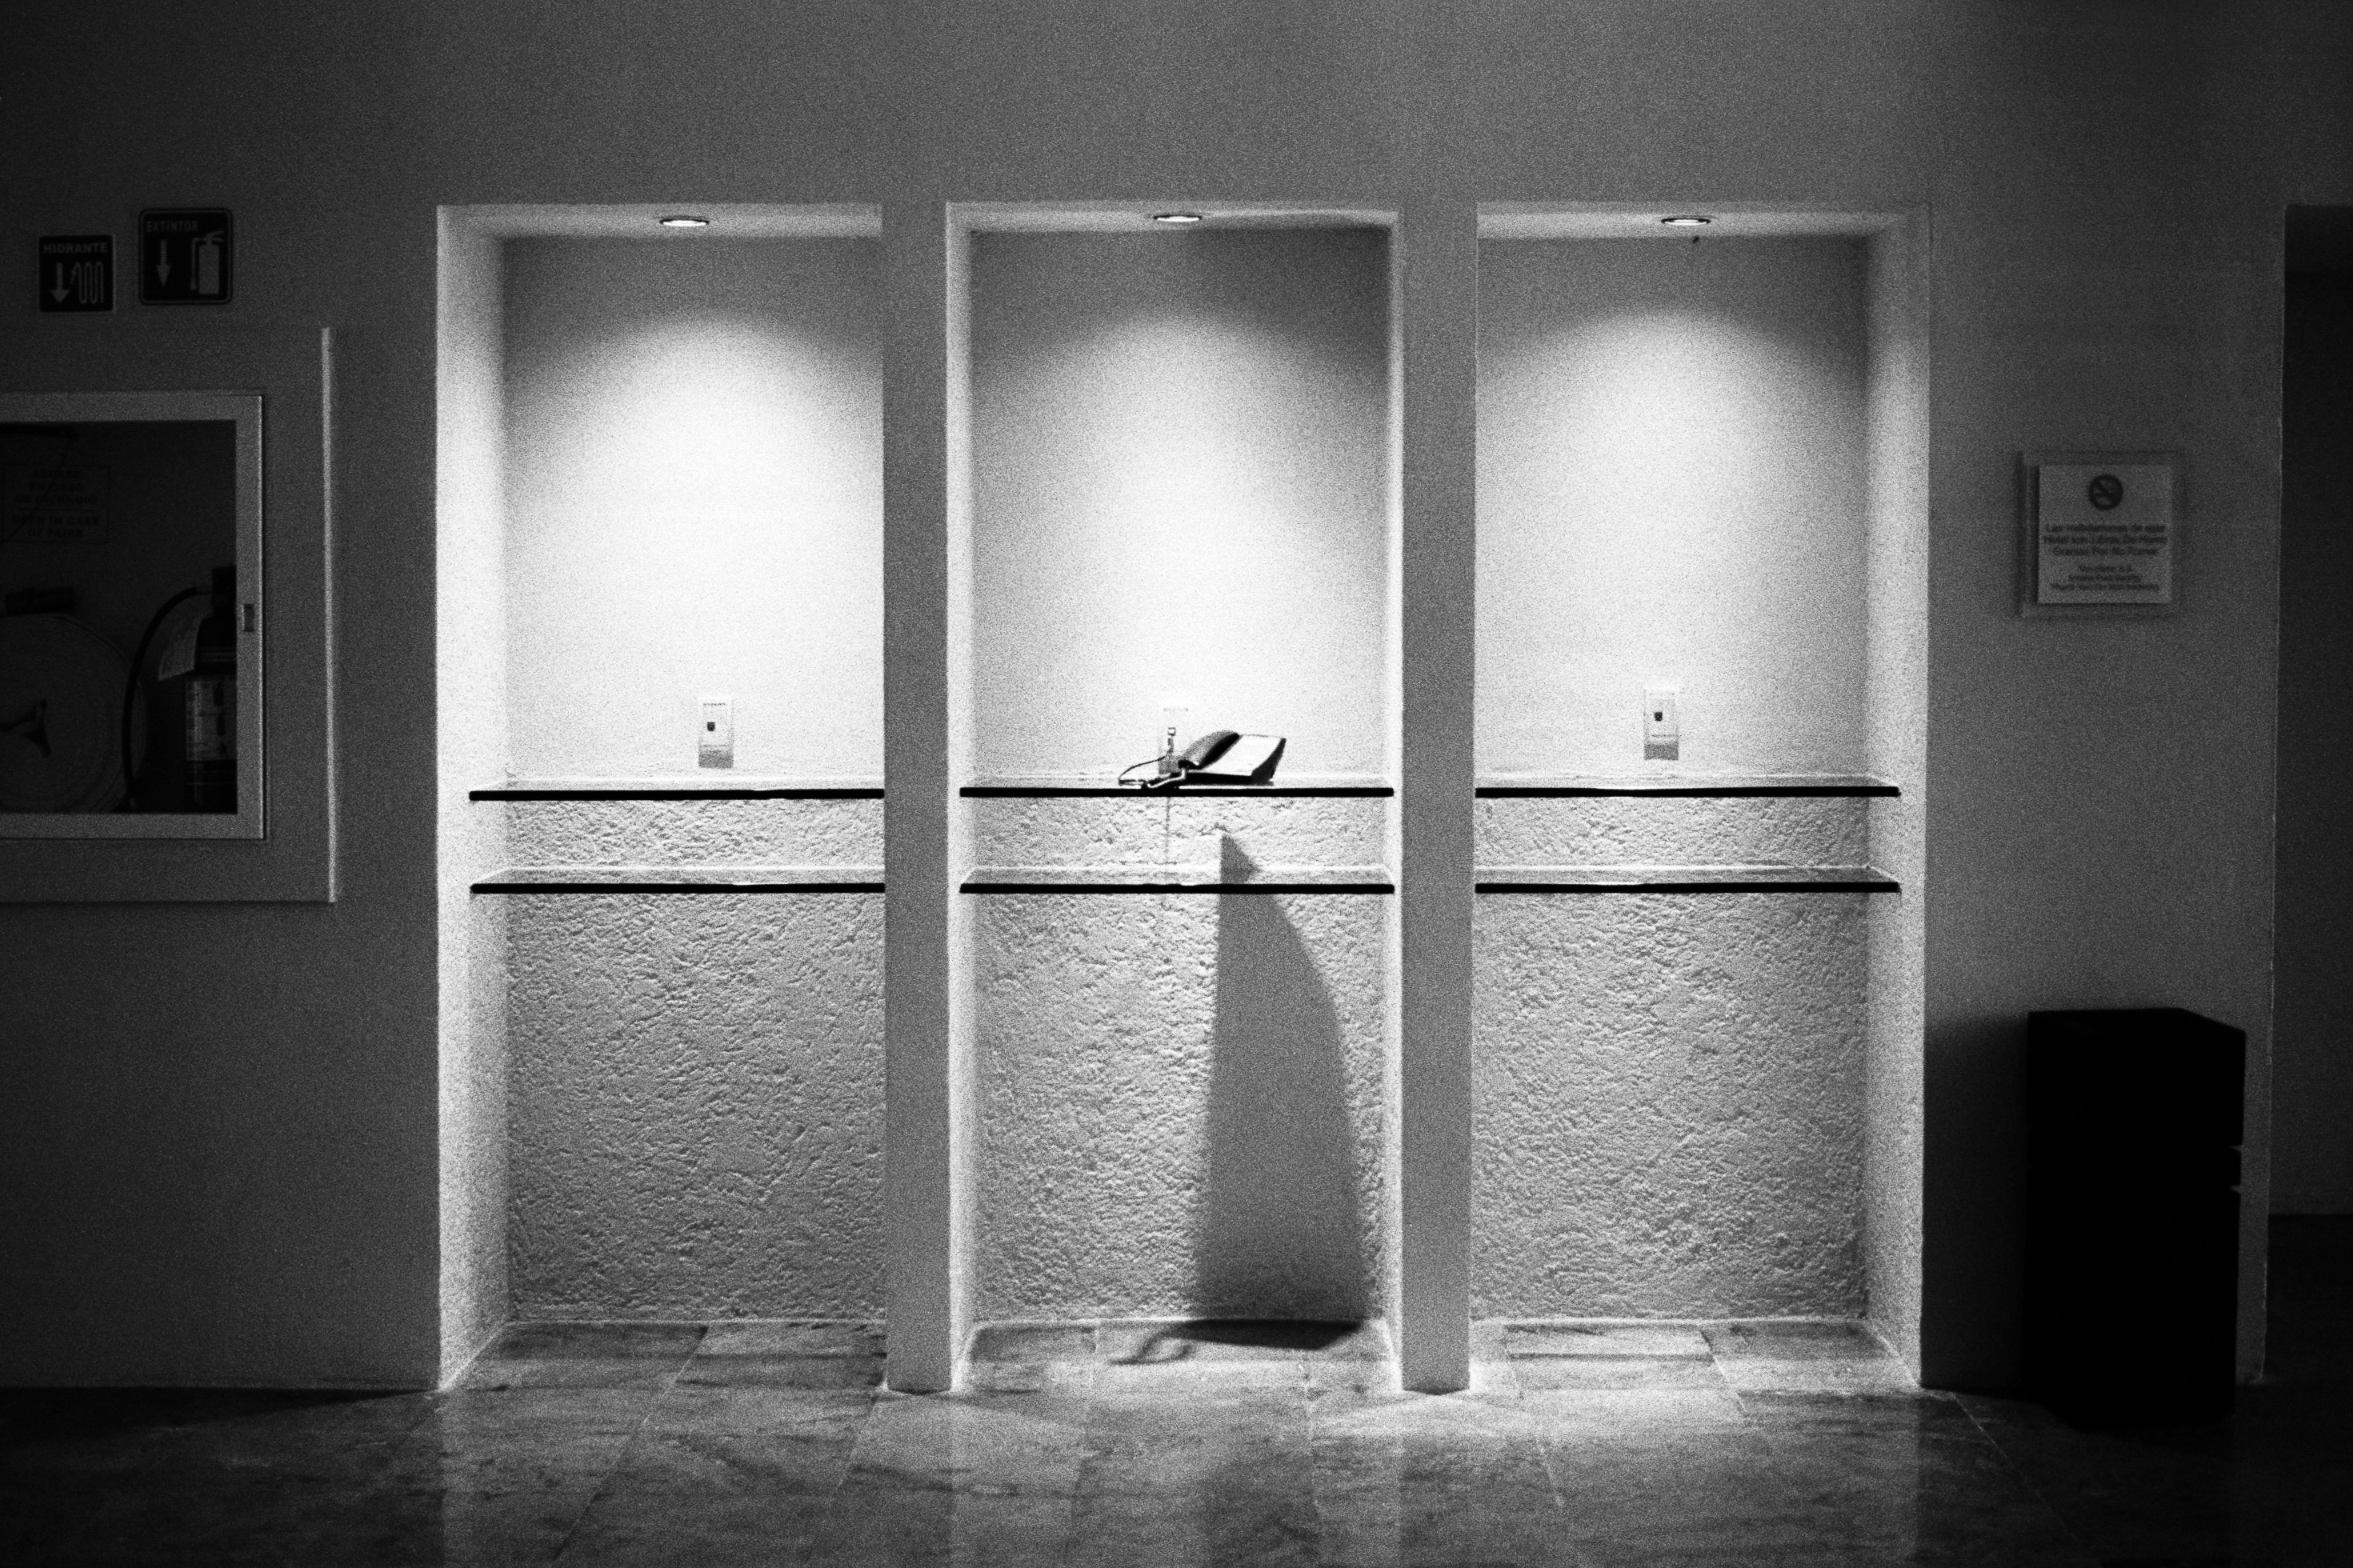 A wall of three empty hotel phonebooths sits empty, except for a single telephone. It sits on the glass shelf of the center booth, casting a long shadow down onto the wall and floor.